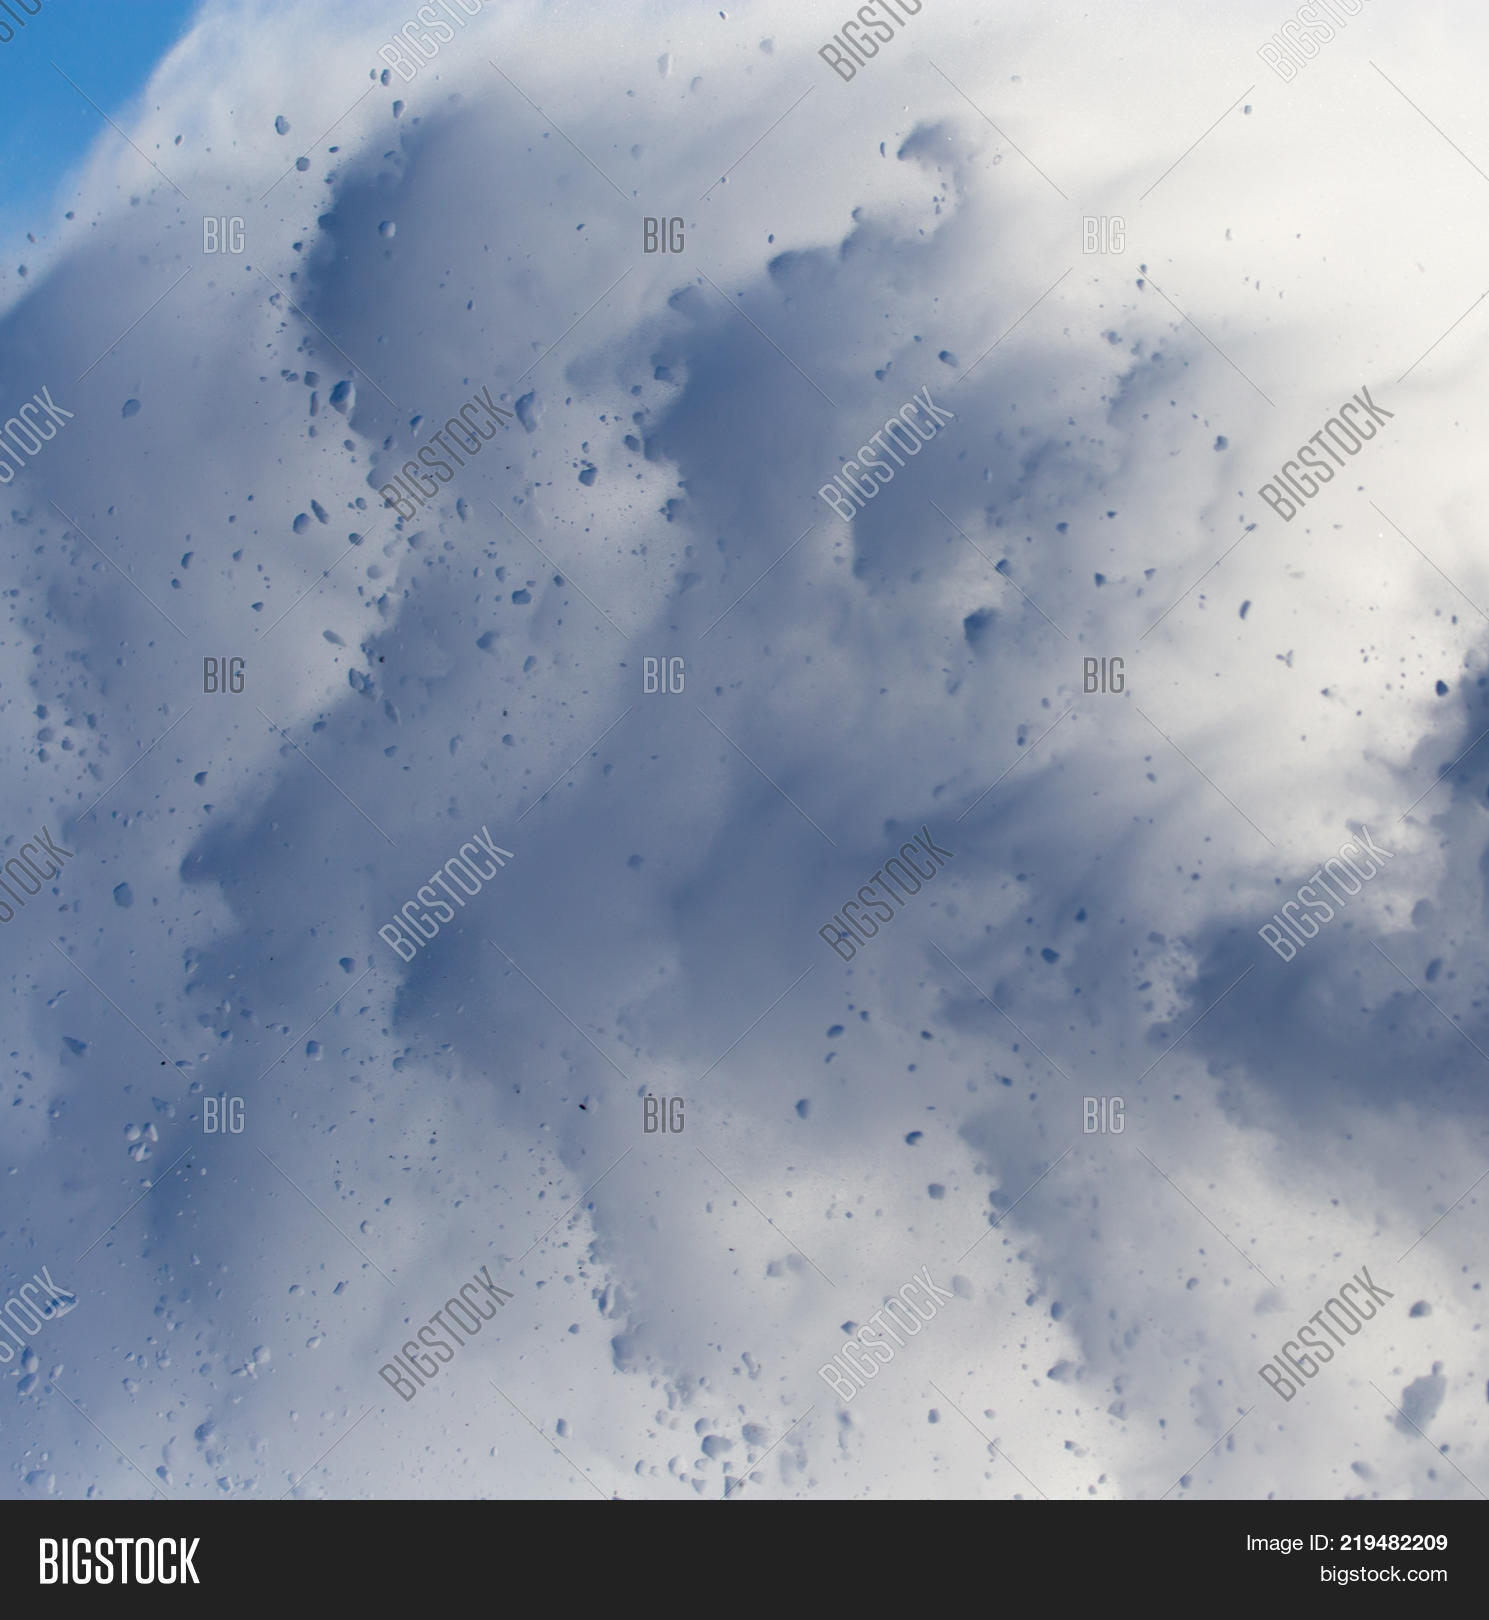 Avalanche Background Image Photo Free Trial Bigstock